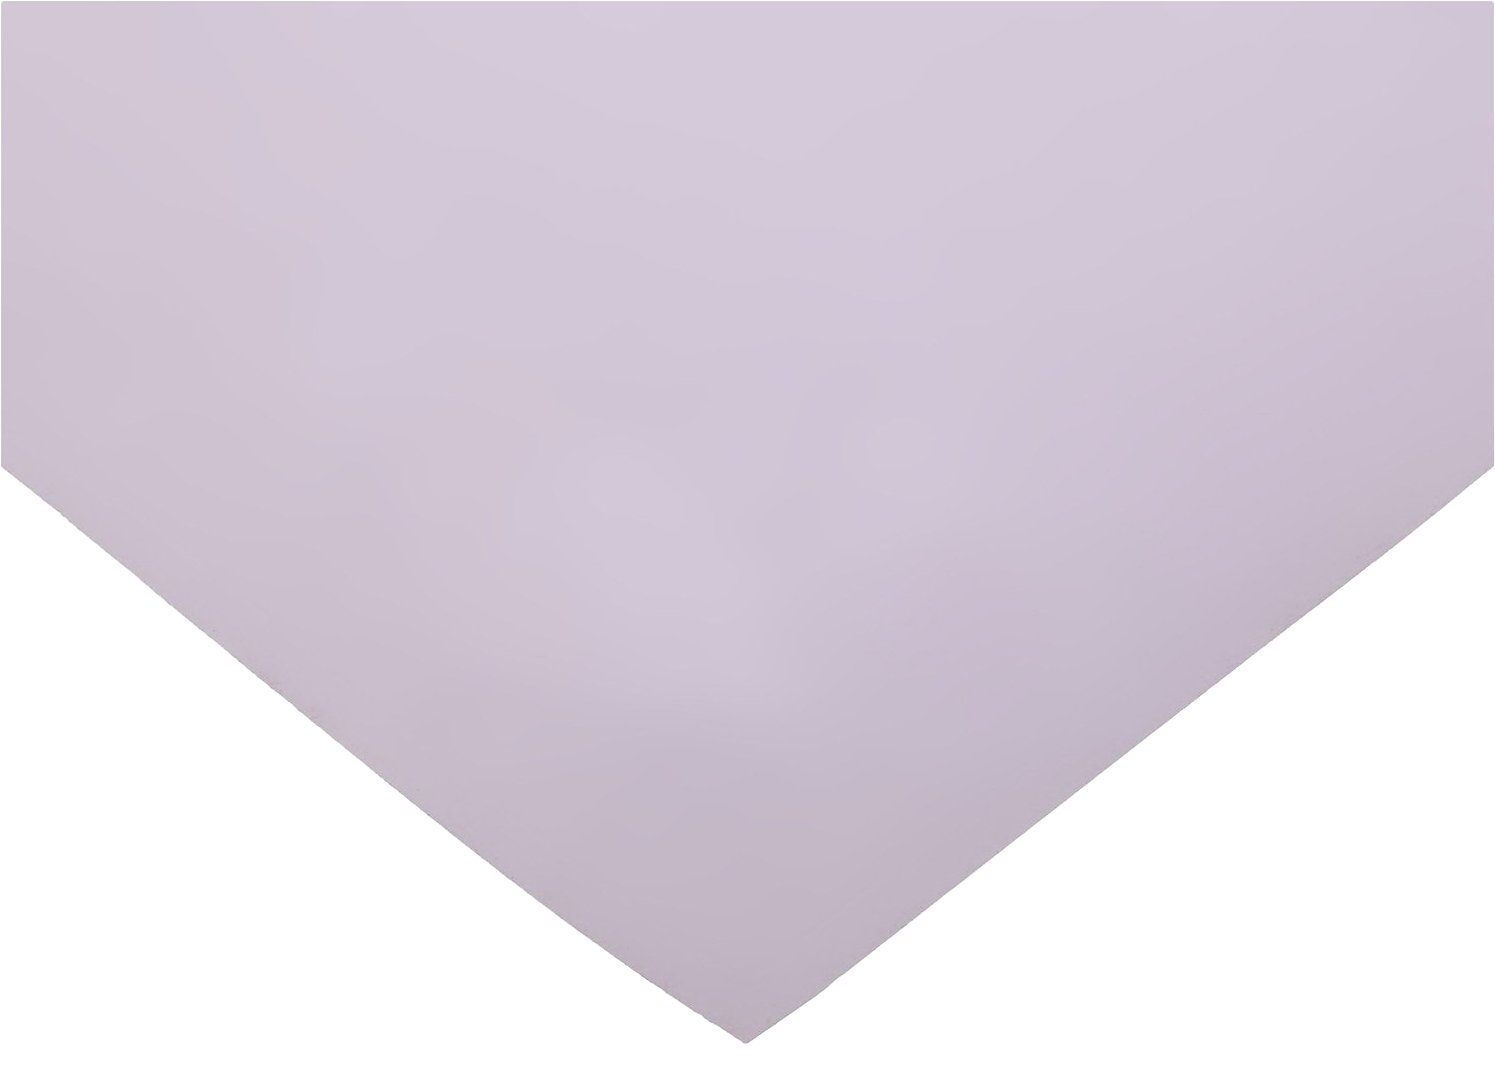 Polyester Shim Stock, Flat Sheet, Purple, 0.0015'' Thickness, 10'' Width, 20'' Length (Pack of 5) by Small Parts